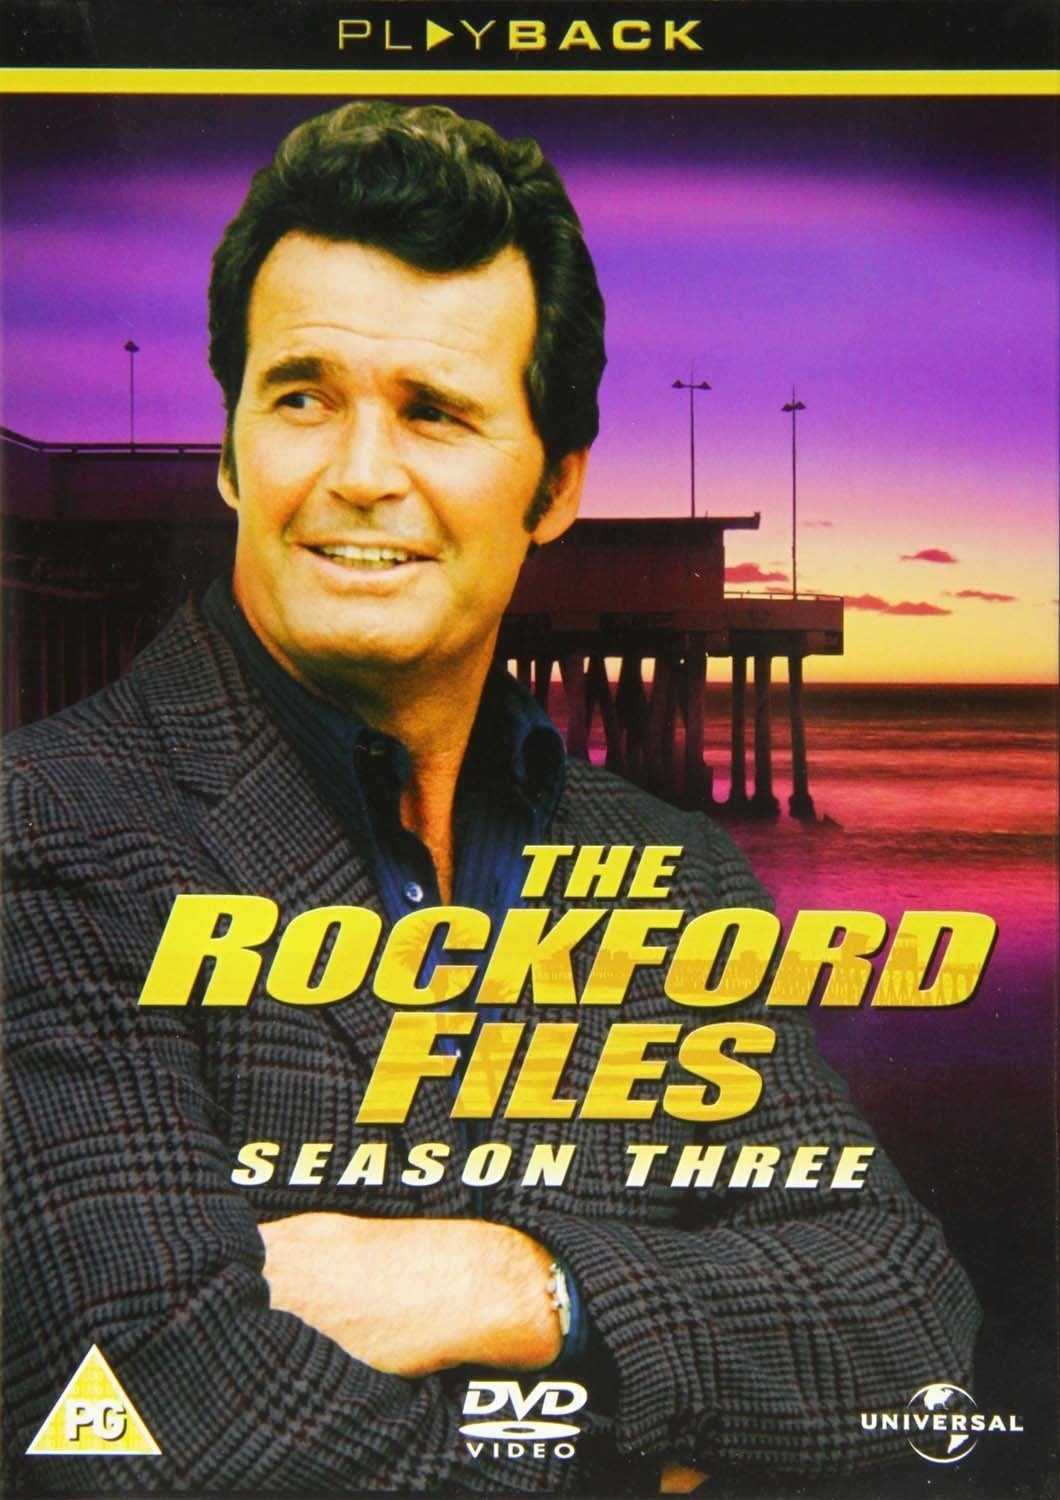 The Rockford Files Season 3